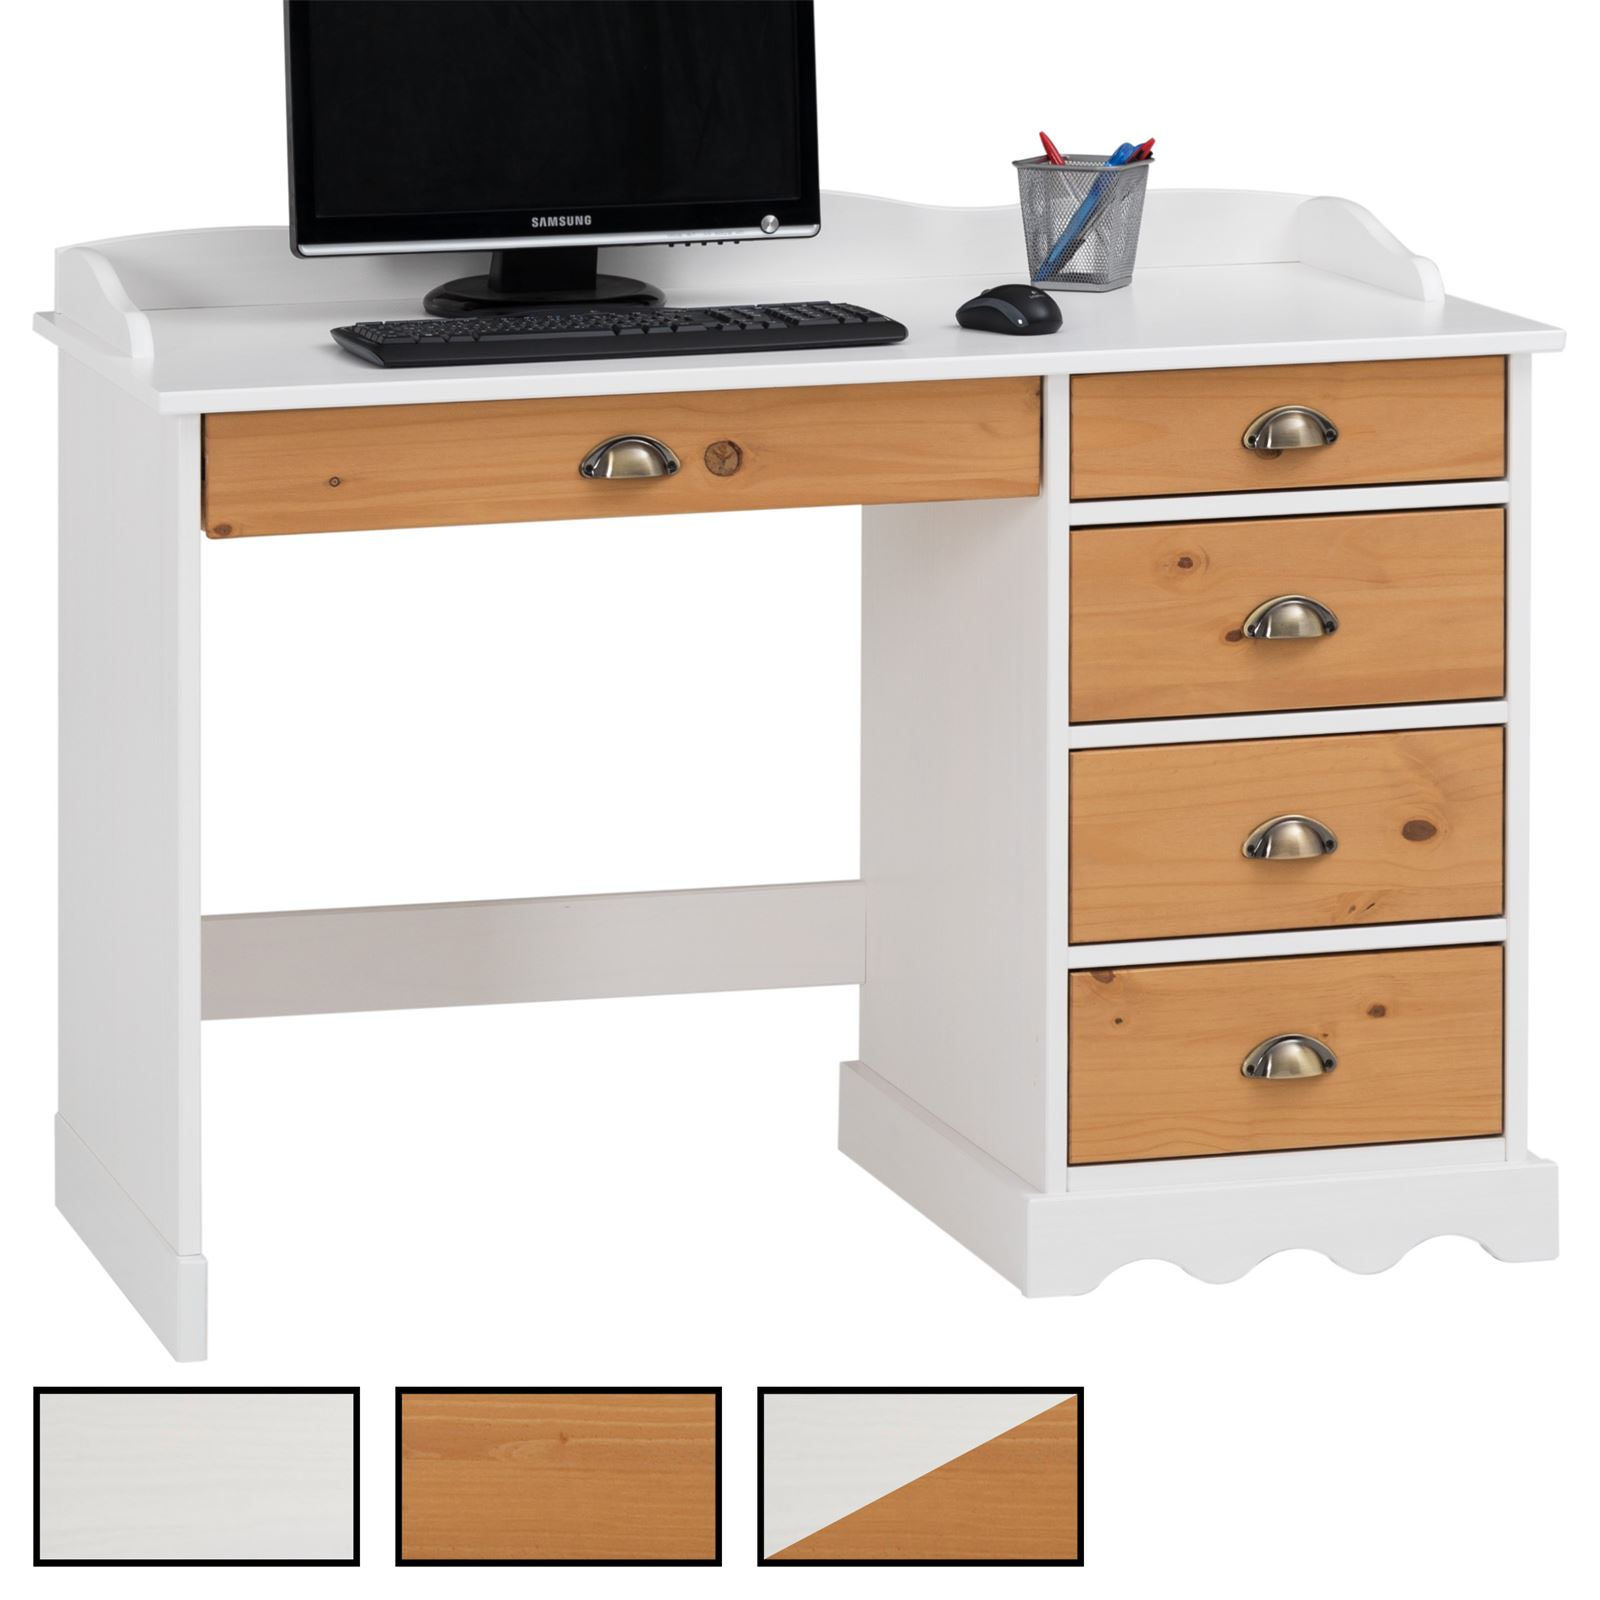 bureau en pin massif colette avec corniche mobil meubles. Black Bedroom Furniture Sets. Home Design Ideas